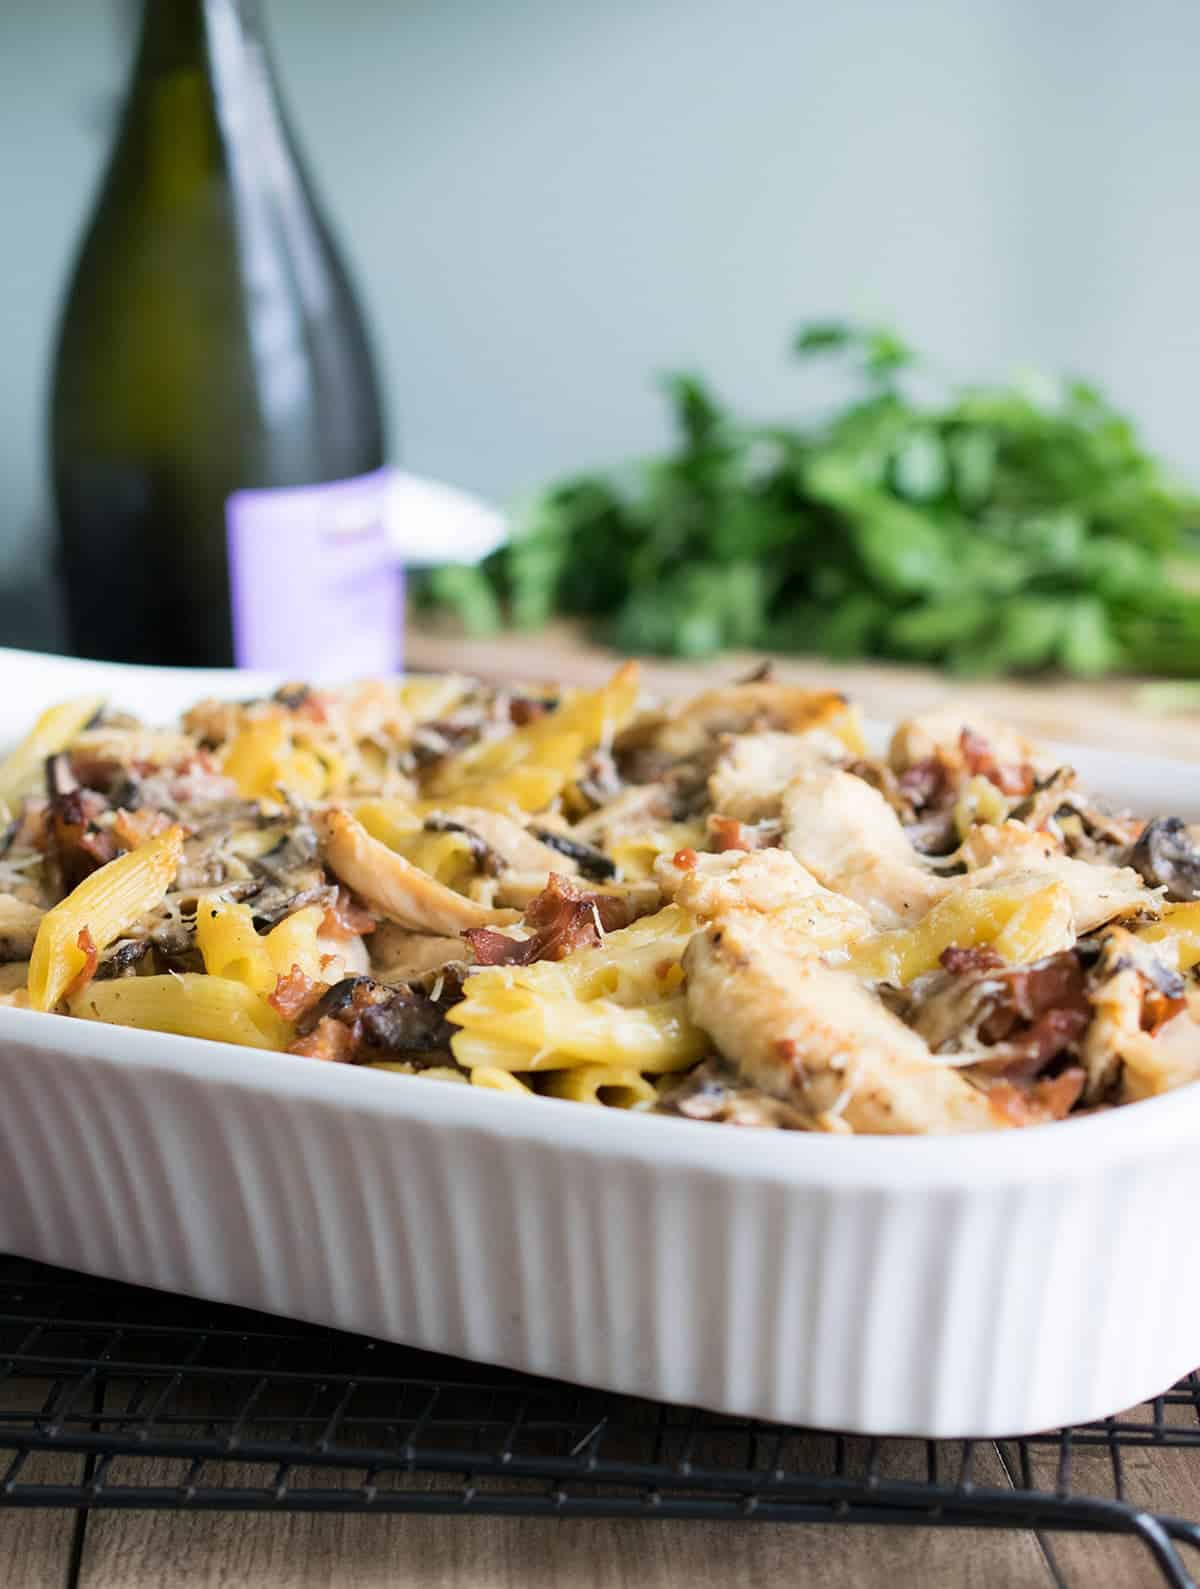 Creamy baked chicken marsala pasta in white bakeware with prosciutto, mushrooms, and parmesan cheese